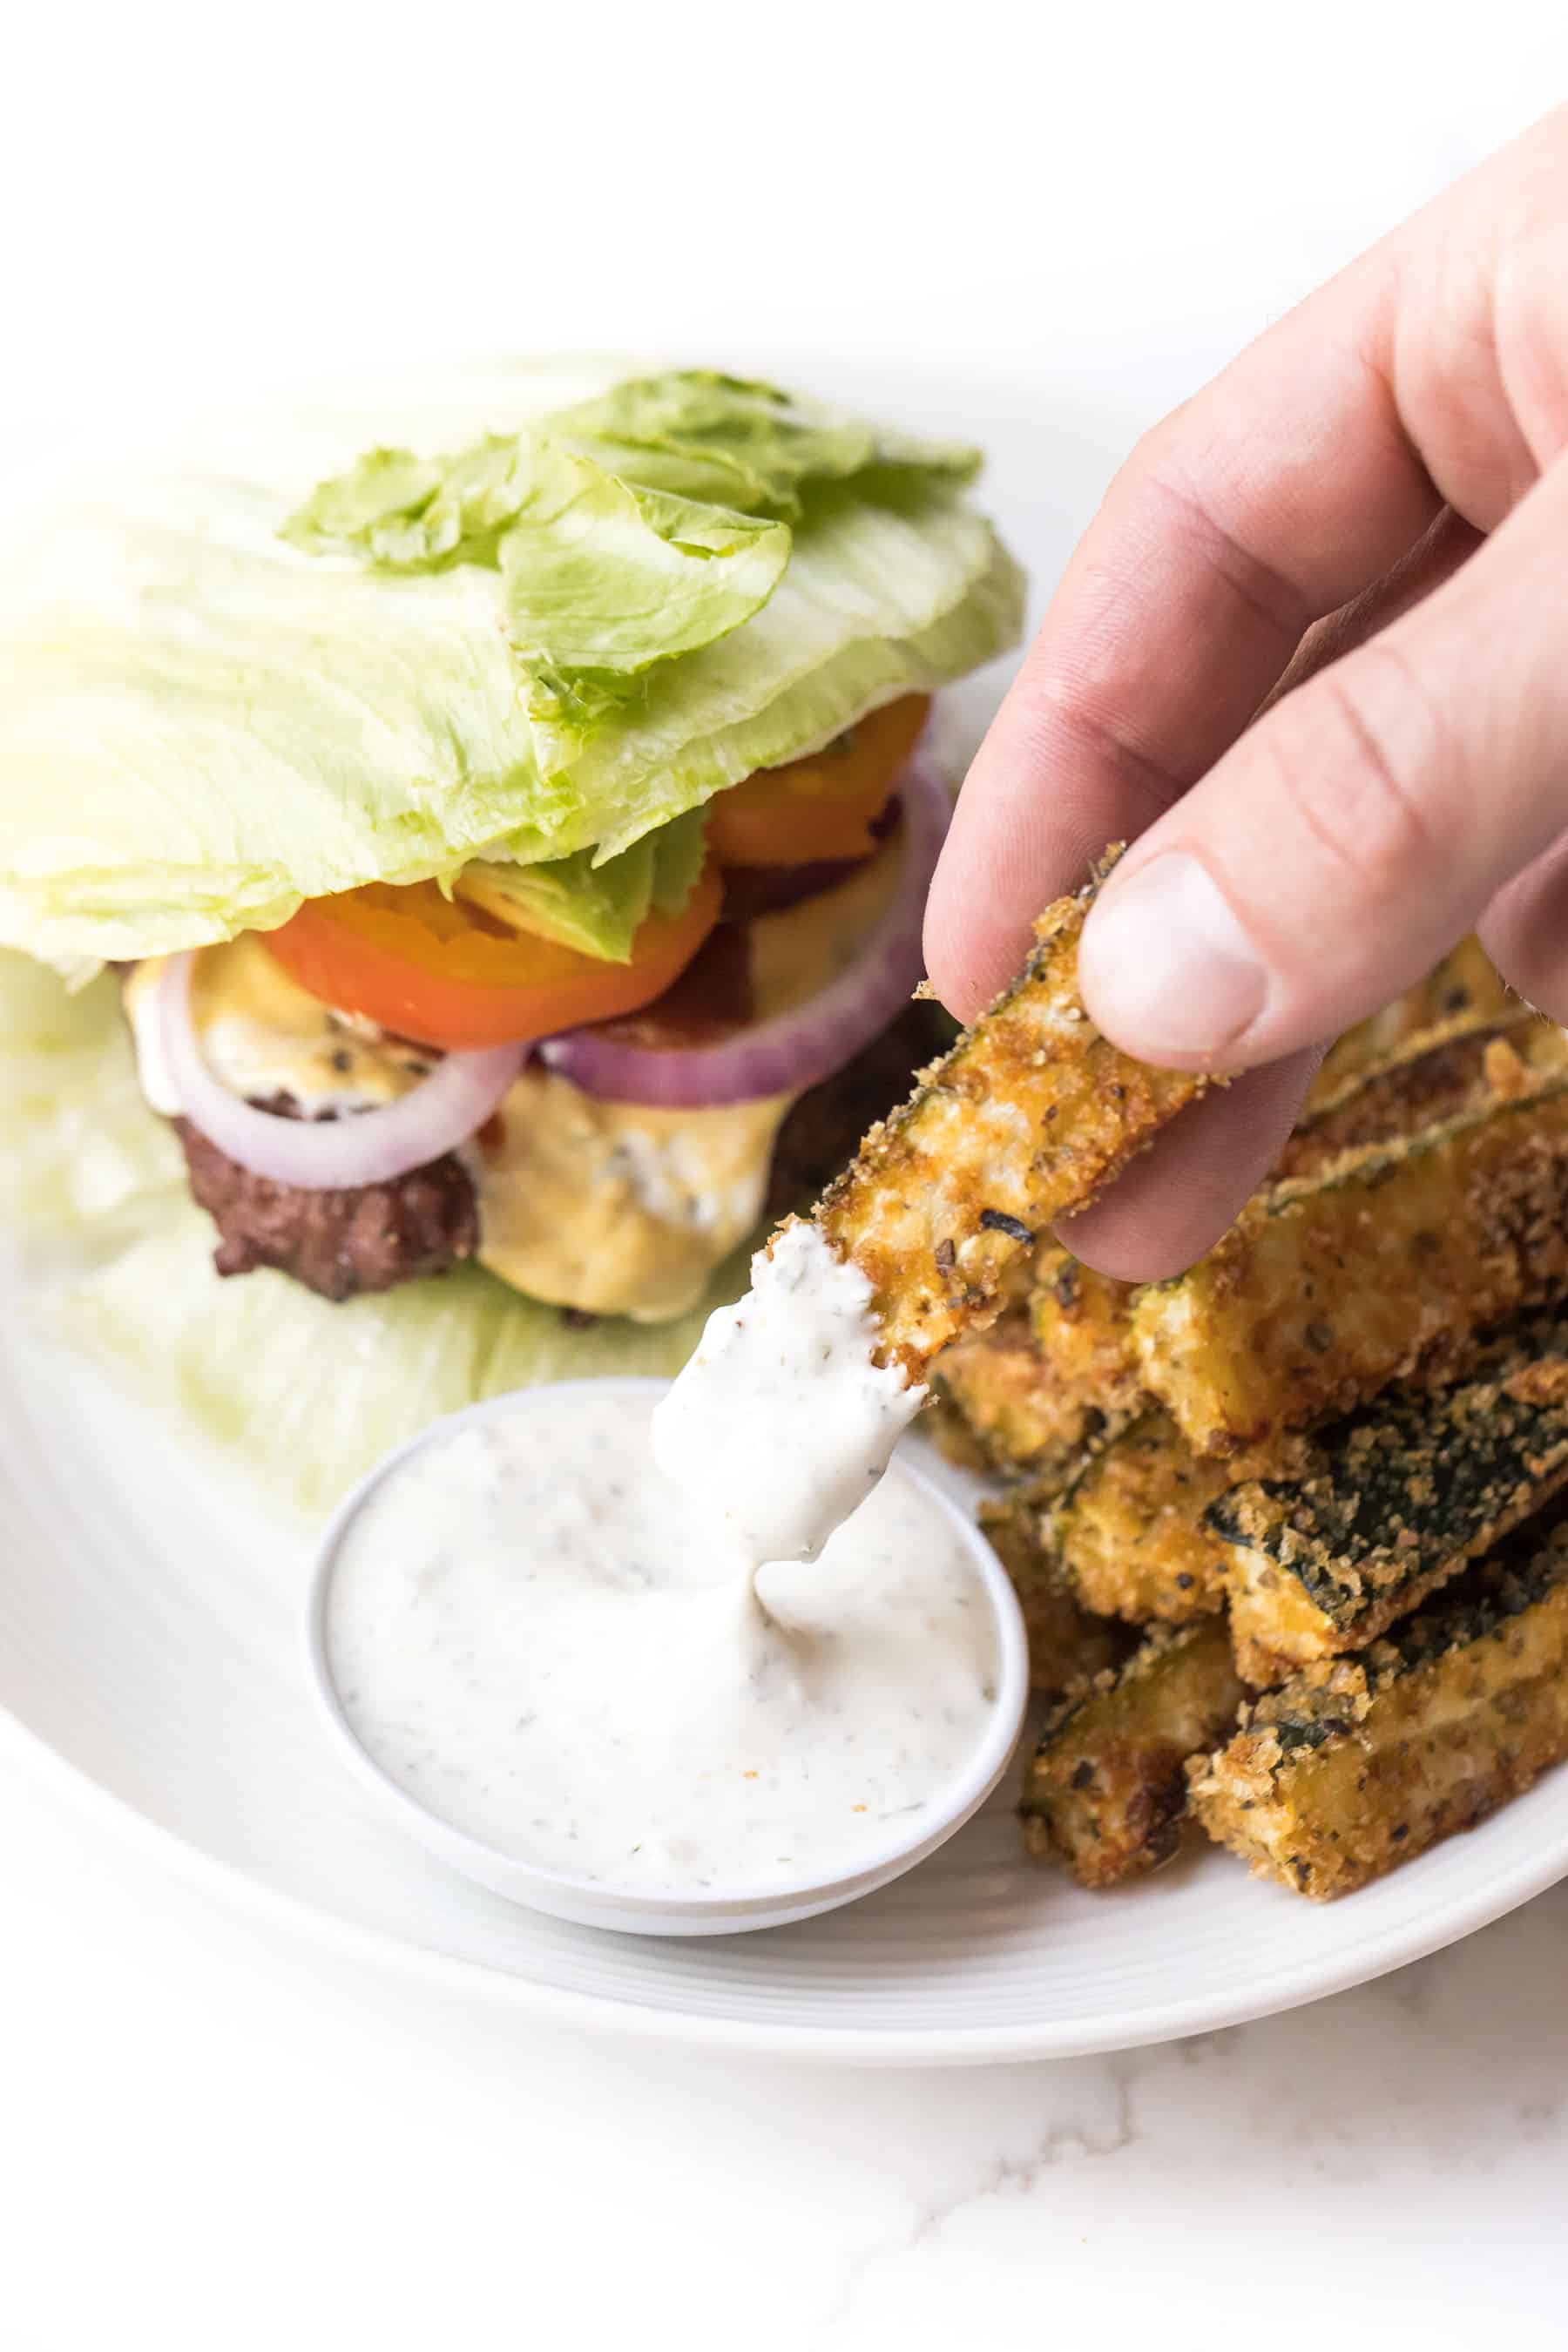 Hand dipping whole30 + keto zucchini fries in ranch dressing